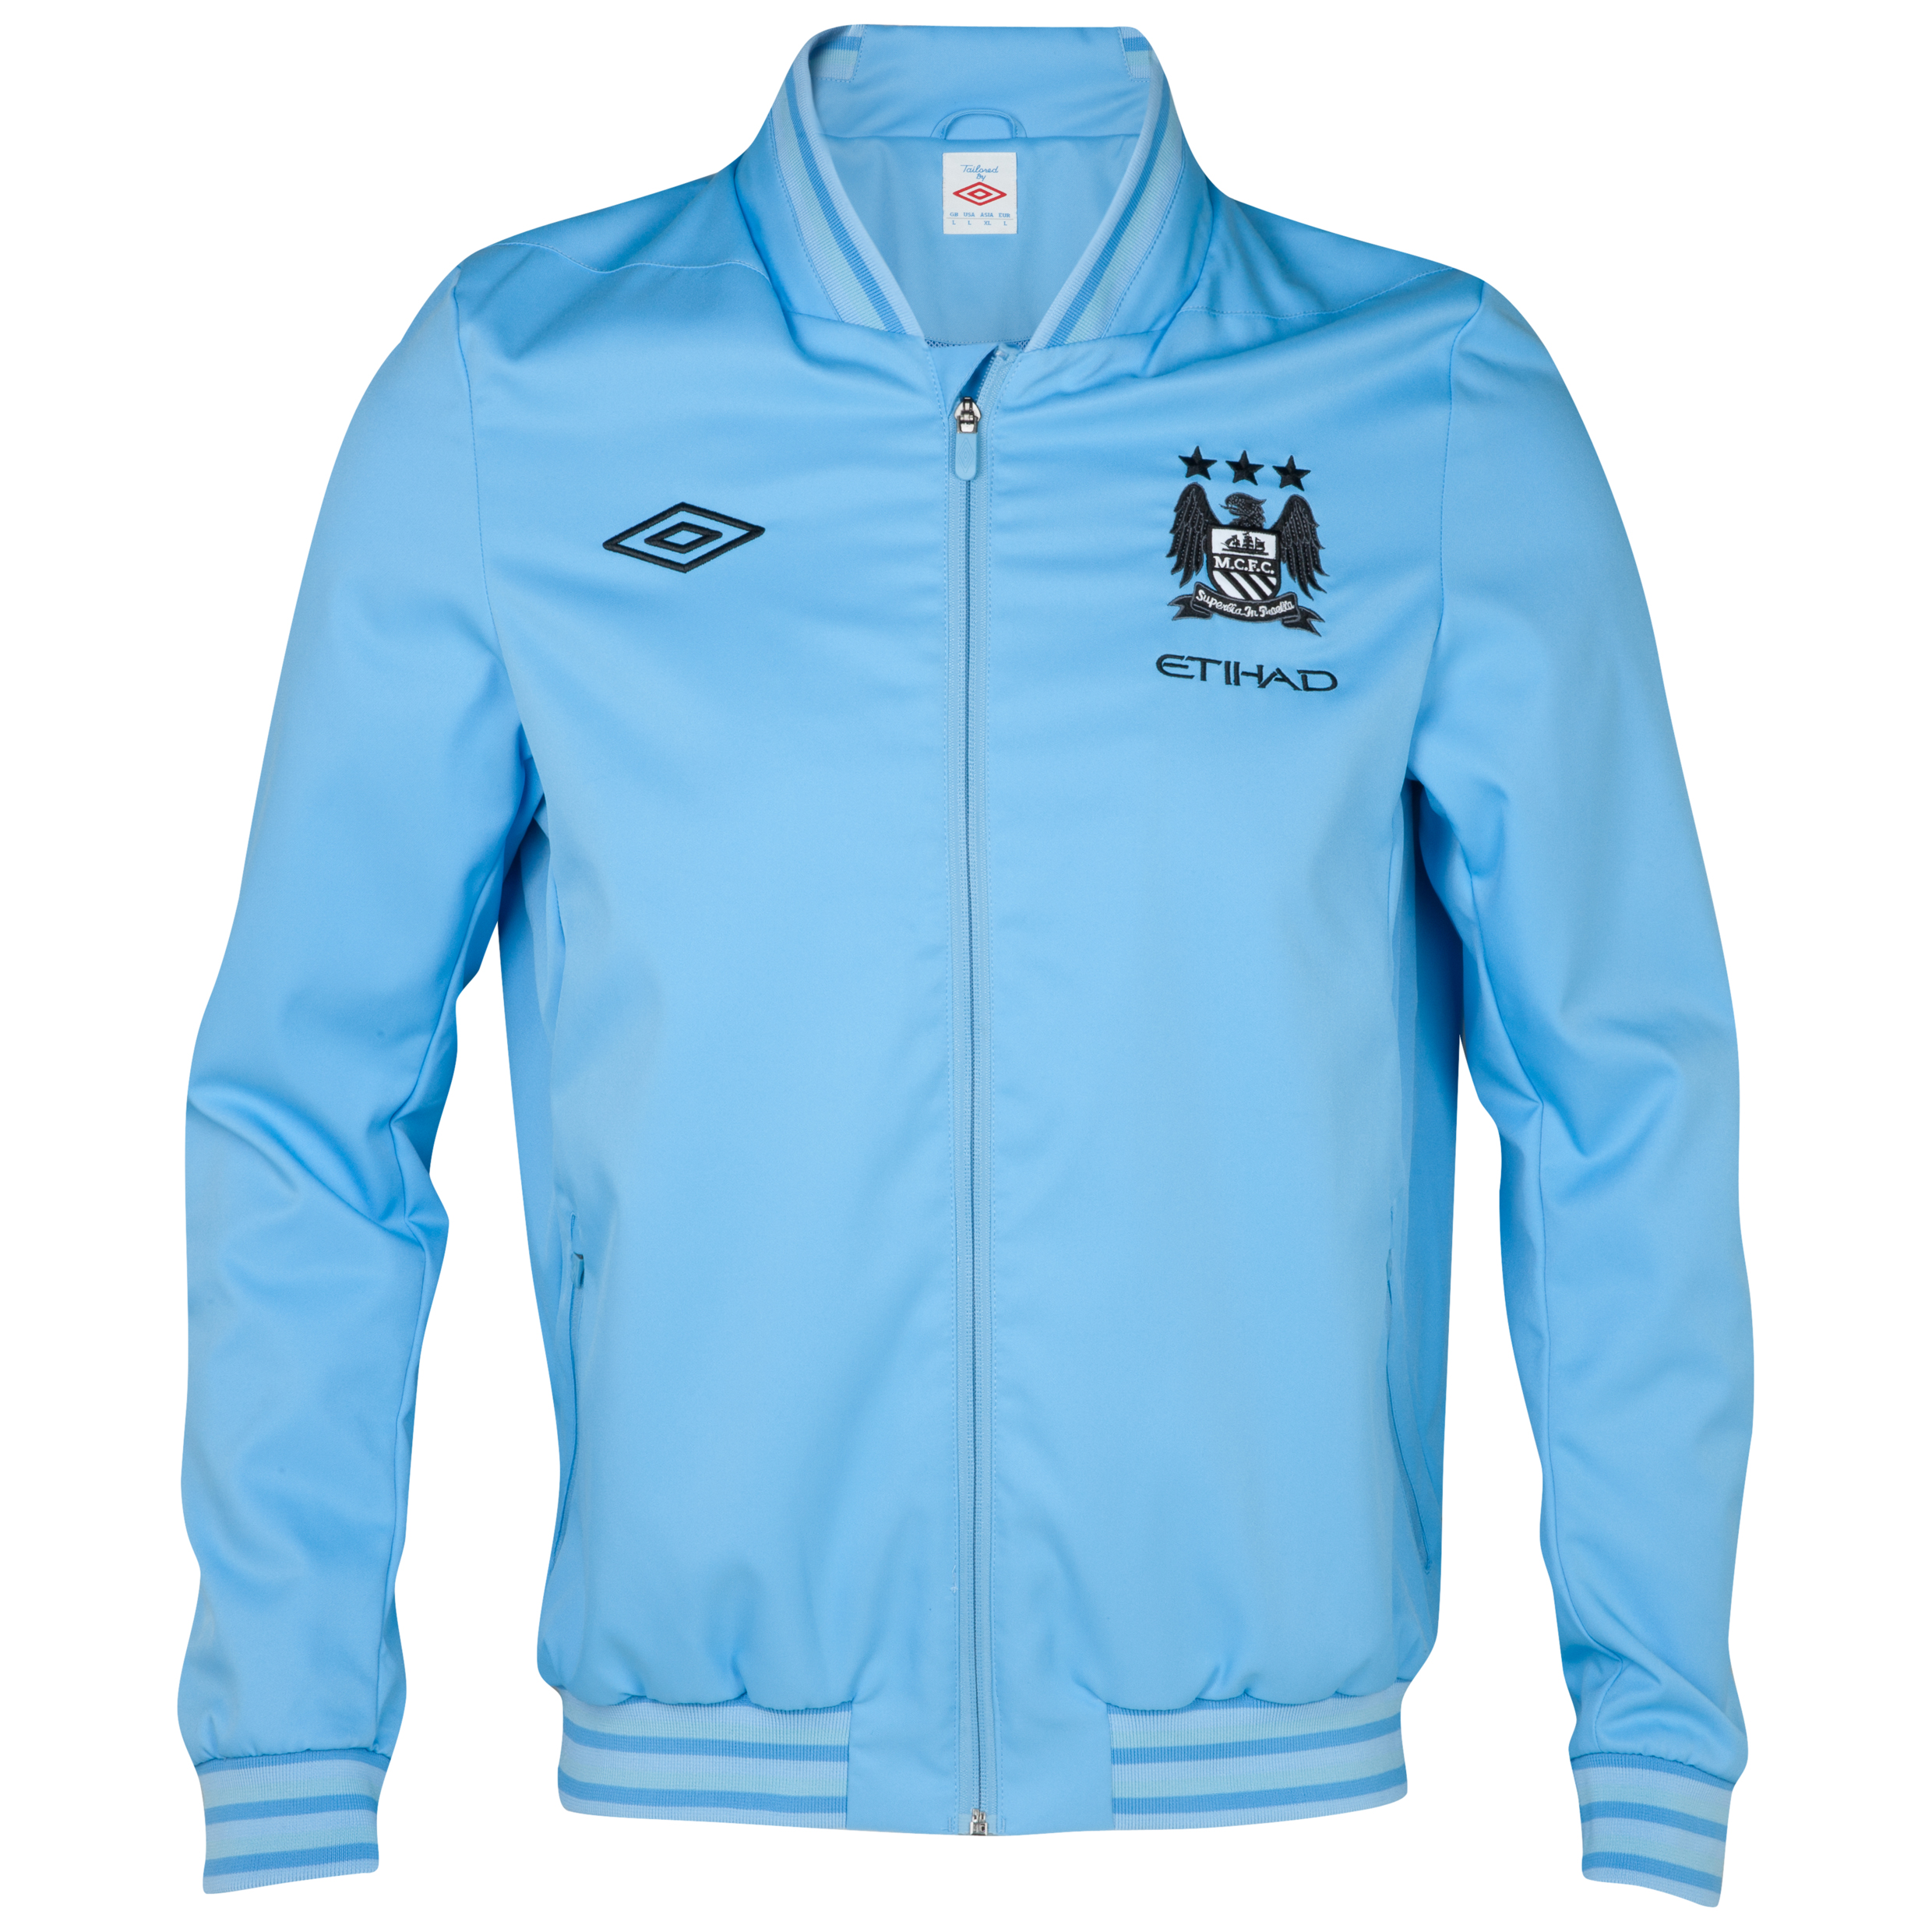 Manchester City Home Walkout Jacket - Sky